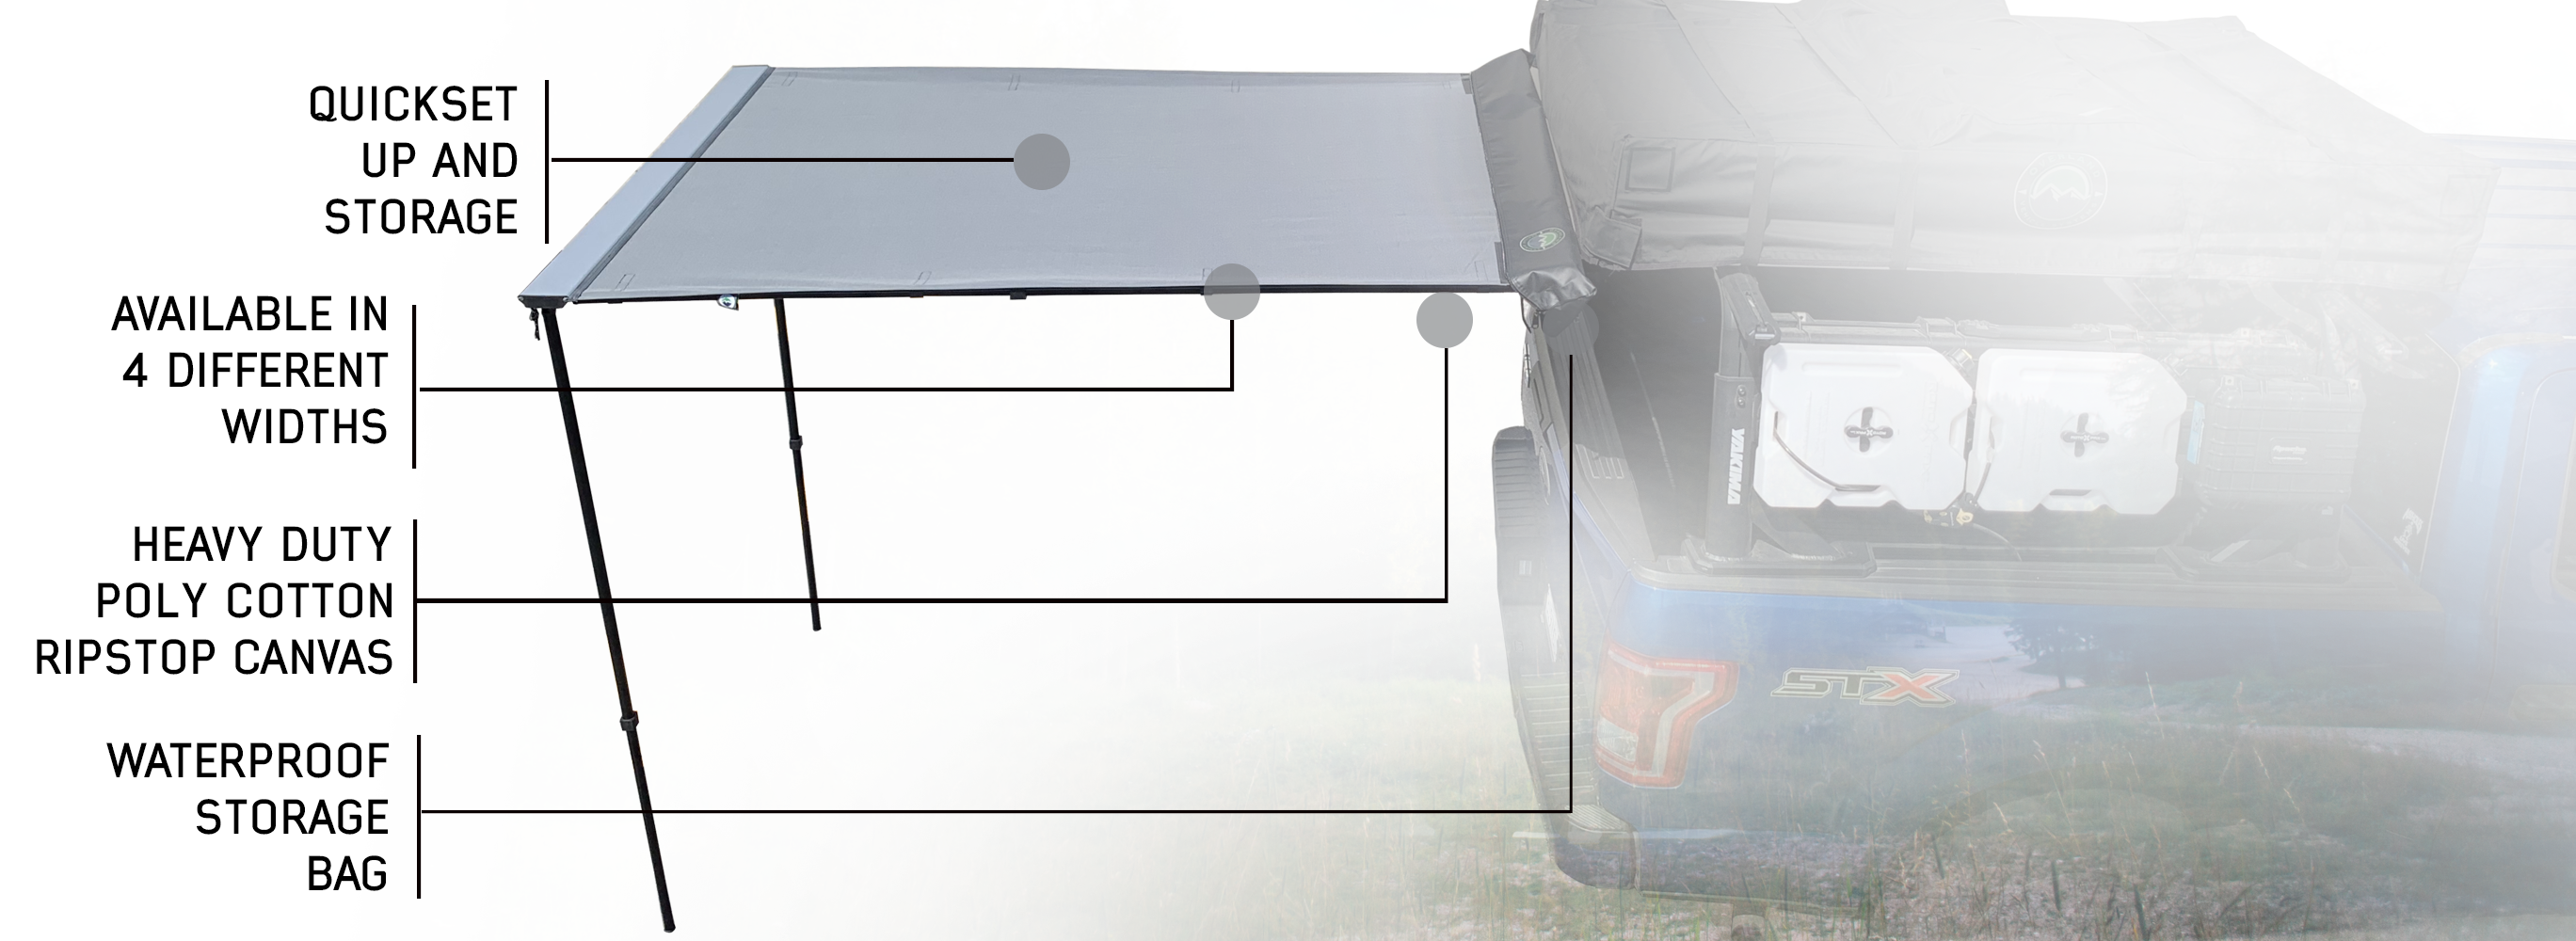 awning-graph-rv.png